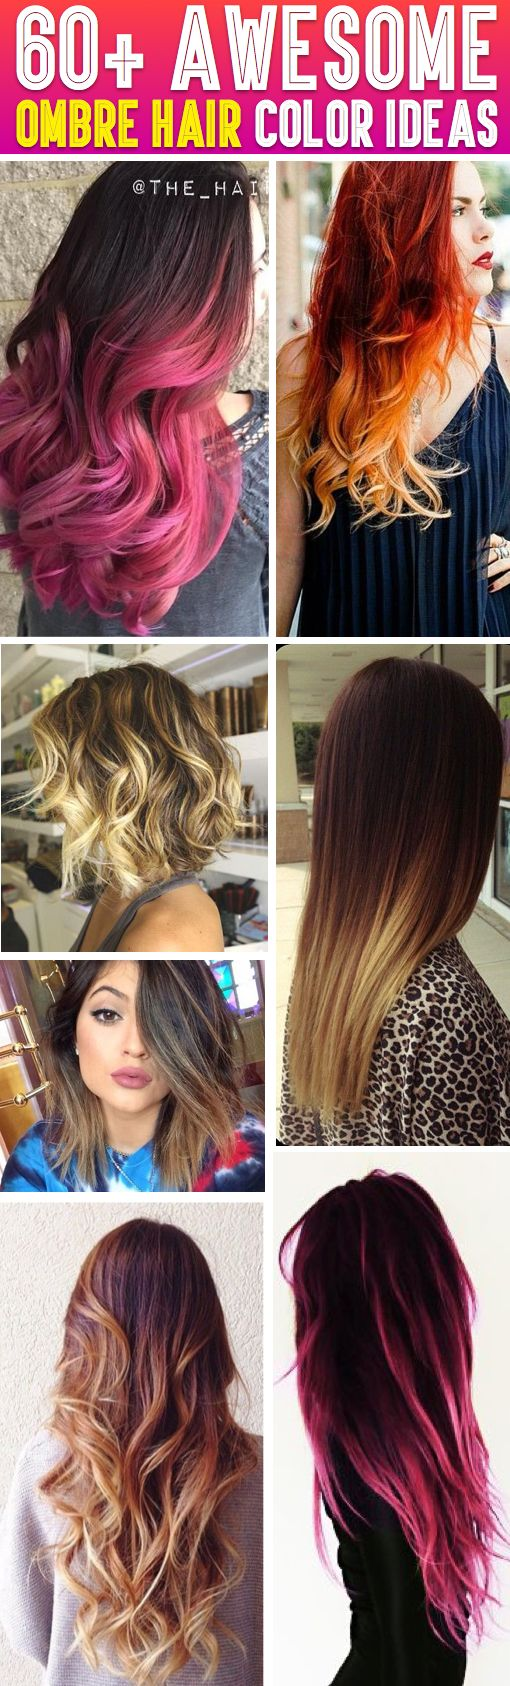 60 Awesome Diy Ombre Hair Color Ideas For 2017 Pinterest Ombre